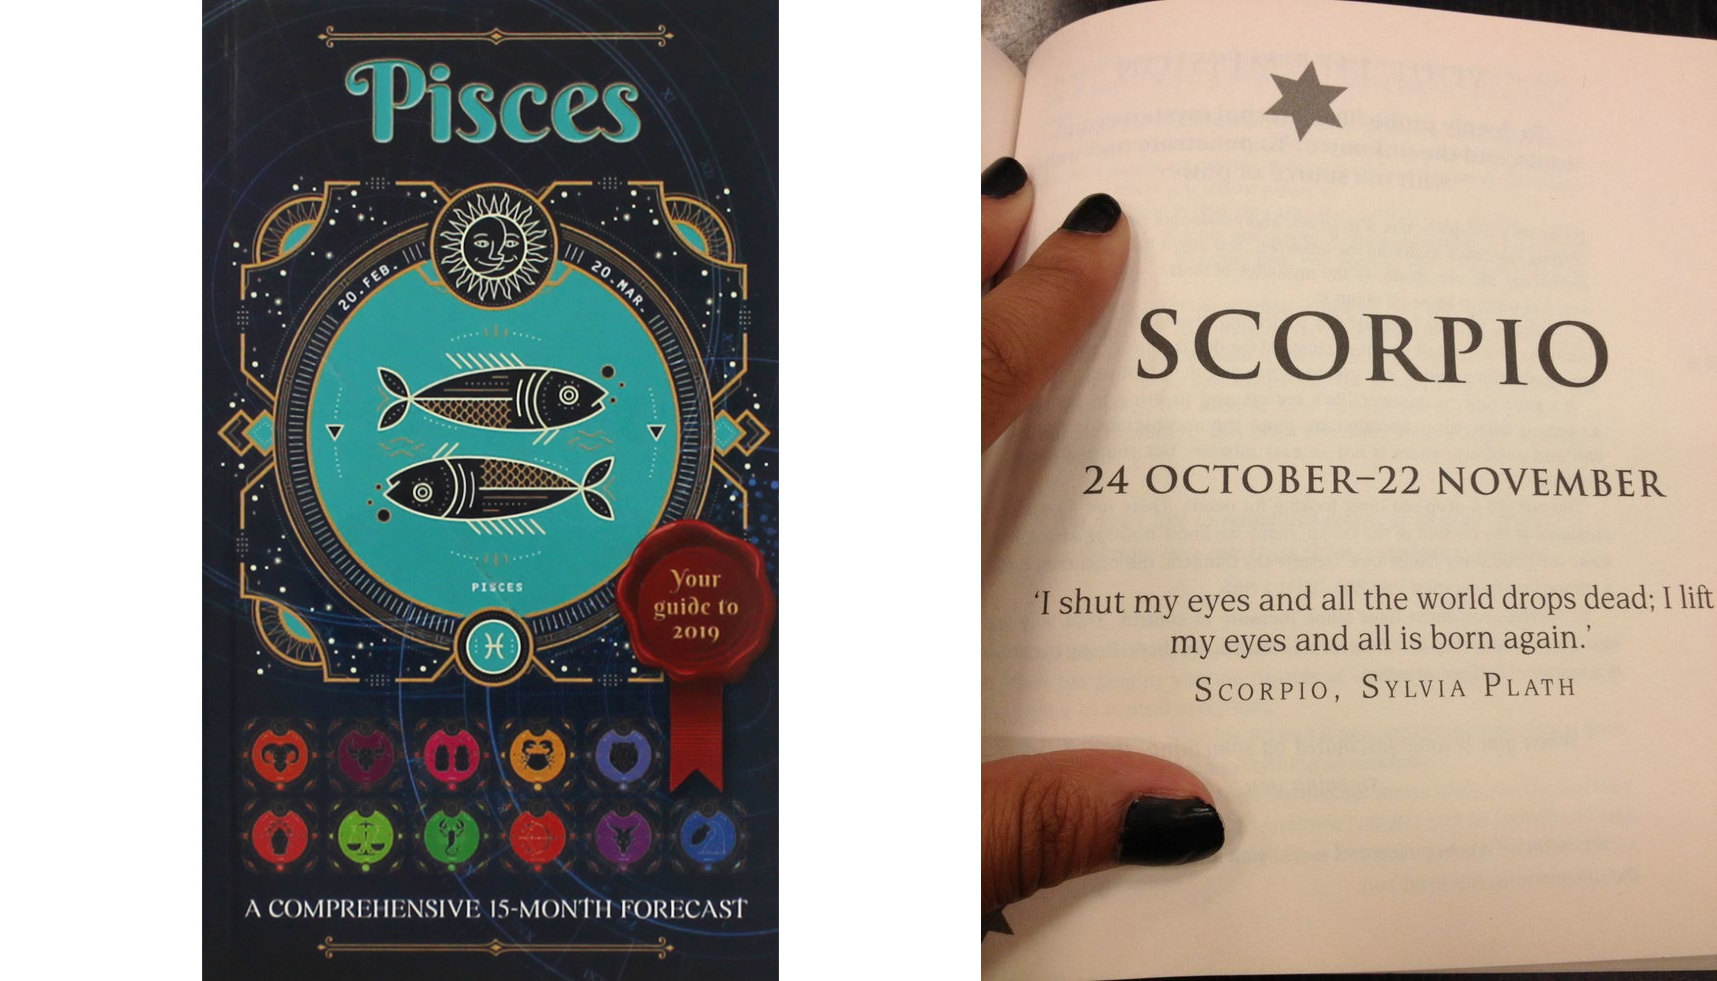 First sight and scorpio love pisces at Scorpio &